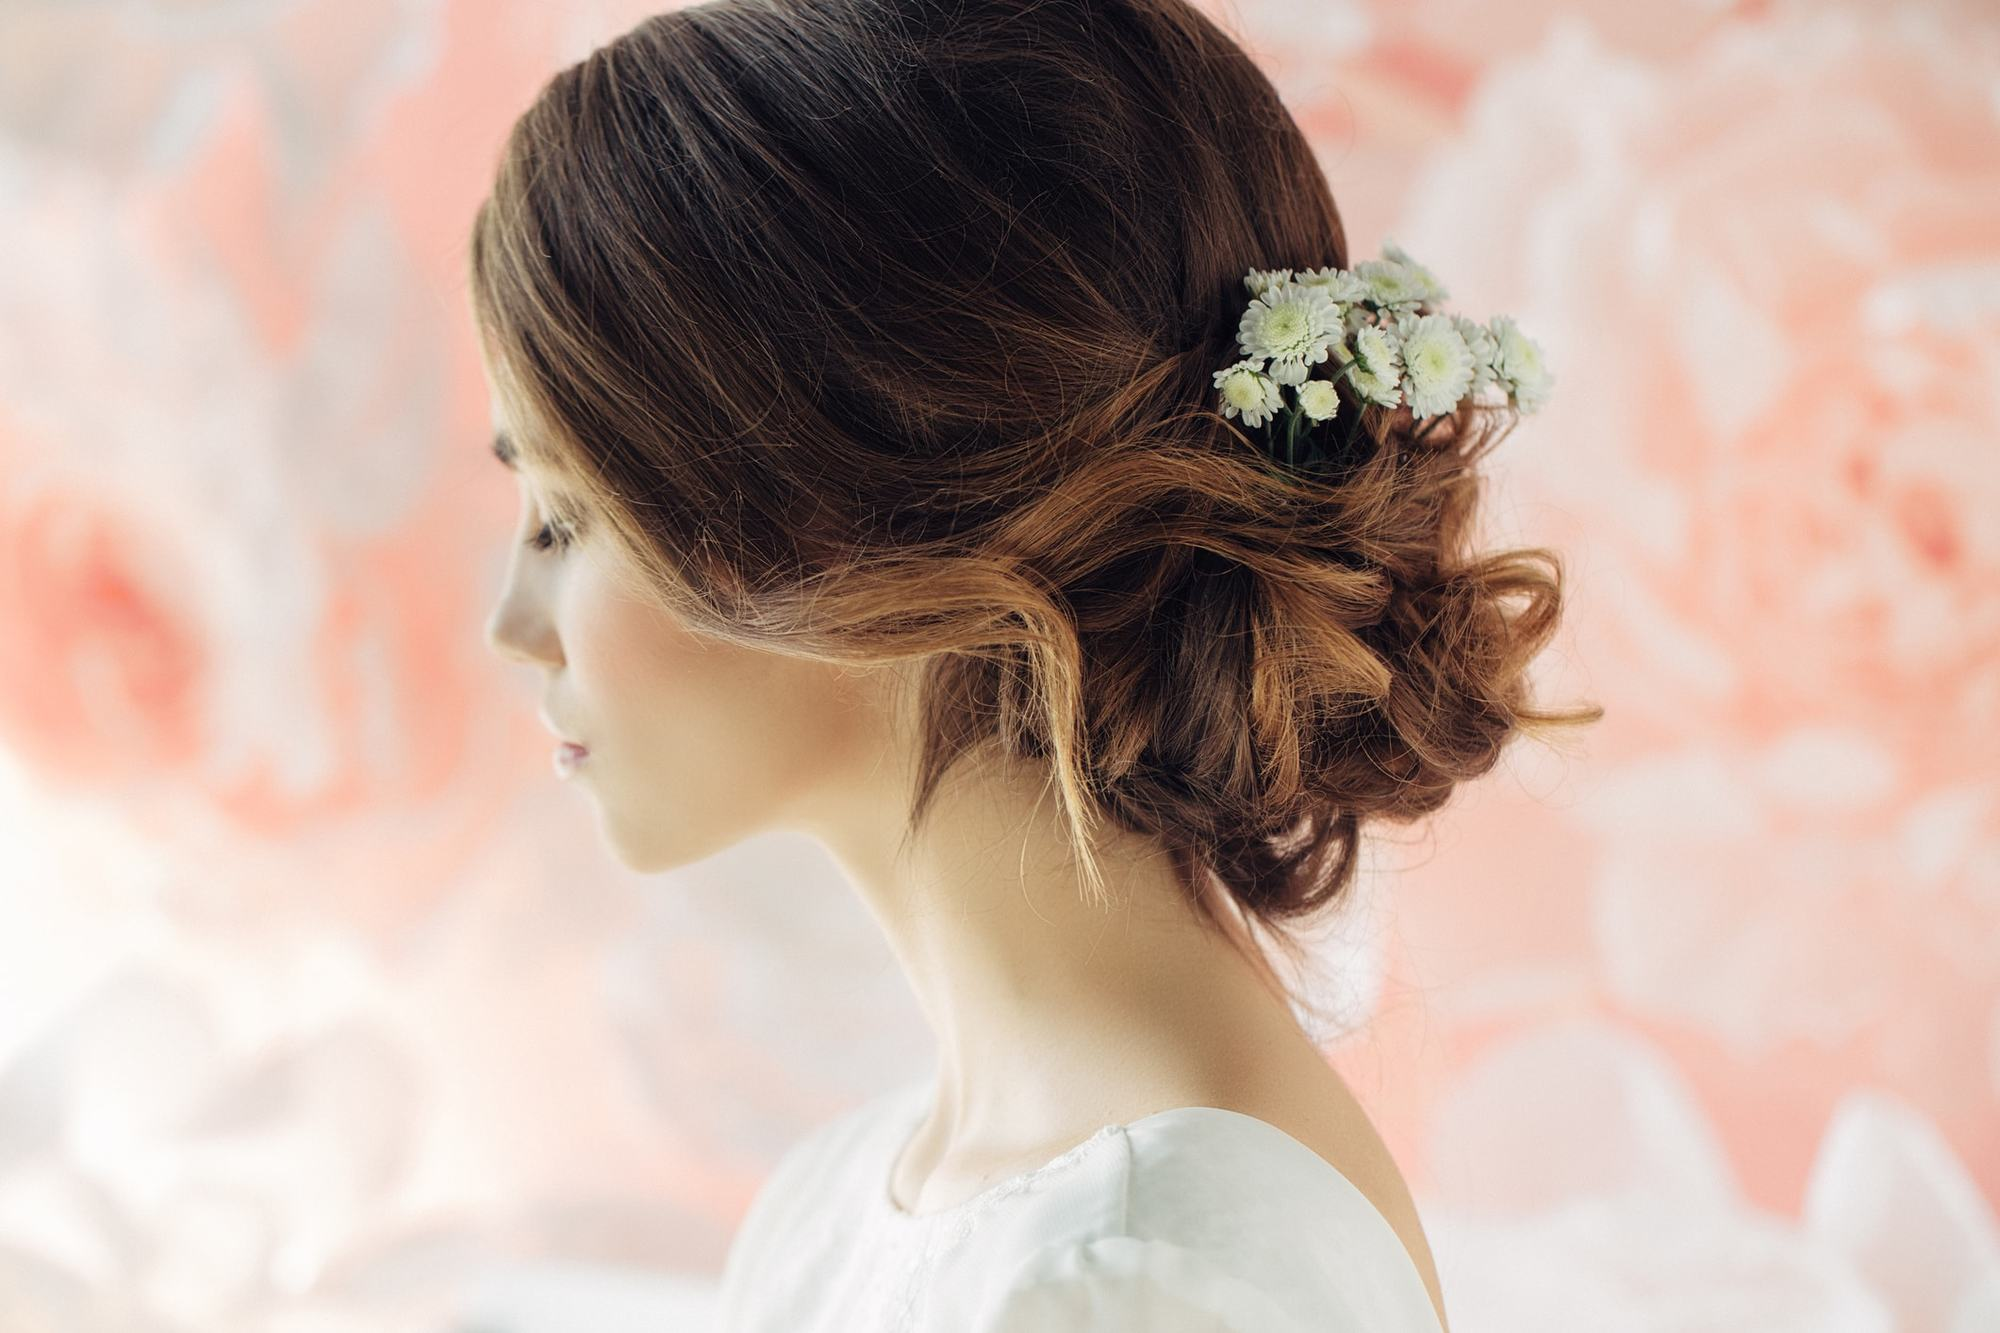 Flower Girl Hairstyles That Flatter Girls Of All Ages